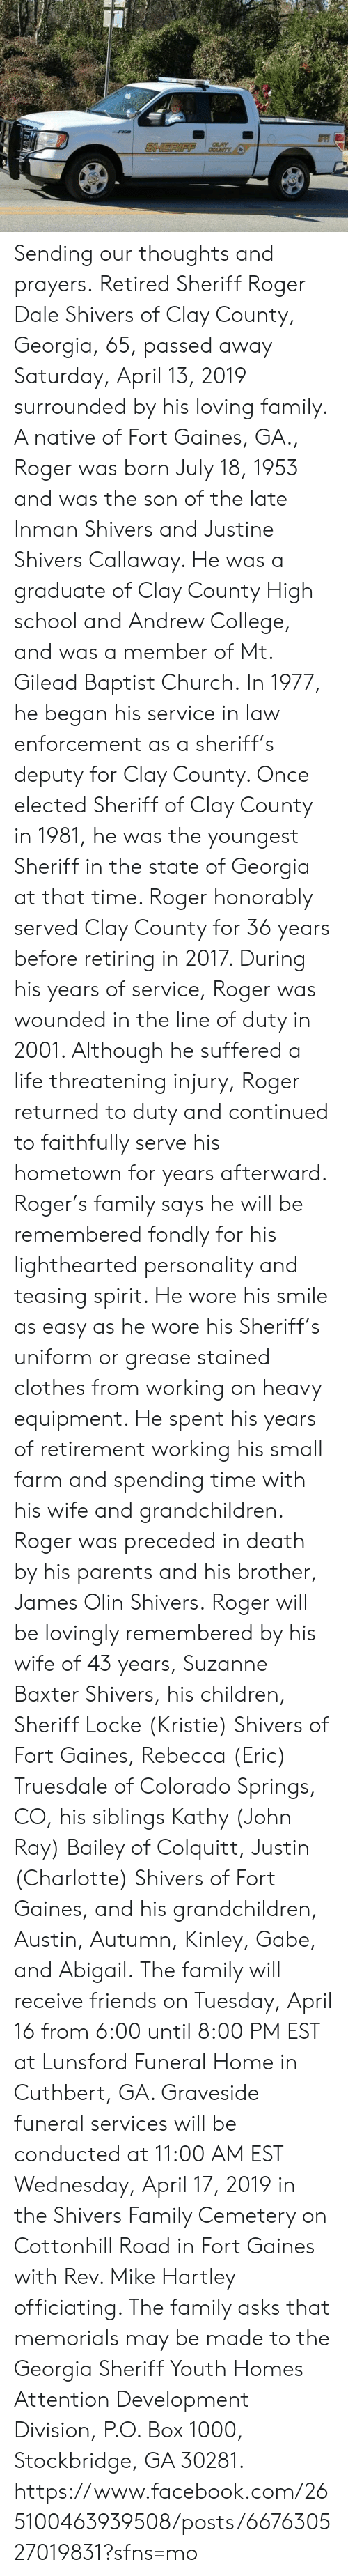 Children, Church, and Clothes: Sending our thoughts and prayers. Retired Sheriff Roger Dale Shivers of Clay County, Georgia, 65, passed away Saturday, April 13, 2019 surrounded by his loving family.  A native of Fort Gaines, GA., Roger was born July 18, 1953 and was the son of the late Inman Shivers and Justine Shivers Callaway. He was a graduate of Clay County High school and Andrew College, and was a member of Mt. Gilead Baptist Church.  In 1977, he began his service in law enforcement as a sheriff's deputy for Clay County. Once elected Sheriff of Clay County in 1981, he was the youngest Sheriff in the state of Georgia at that time. Roger honorably served Clay County for 36 years before retiring in 2017. During his years of service, Roger was wounded in the line of duty in 2001. Although he suffered a life threatening injury, Roger returned to duty and continued to faithfully serve his hometown for years afterward.  Roger's family says he will be remembered fondly for his lighthearted personality and teasing spirit. He wore his smile as easy as he wore his Sheriff's uniform or grease stained clothes from working on heavy equipment. He spent his years of retirement working his small farm and spending time with his wife and grandchildren.  Roger was preceded in death by his parents and his brother, James Olin Shivers. Roger will be lovingly remembered by his wife of 43 years, Suzanne Baxter Shivers, his children, Sheriff Locke (Kristie) Shivers of Fort Gaines, Rebecca (Eric) Truesdale of Colorado Springs, CO, his siblings Kathy (John Ray) Bailey of Colquitt, Justin (Charlotte) Shivers of Fort Gaines, and his grandchildren, Austin, Autumn, Kinley, Gabe, and Abigail.  The family will receive friends on Tuesday, April 16 from 6:00 until 8:00 PM EST at Lunsford Funeral Home in Cuthbert, GA. Graveside funeral services will be conducted at 11:00 AM EST Wednesday, April 17, 2019 in the Shivers Family Cemetery on Cottonhill Road in Fort Gaines with Rev. Mike Hartley officia